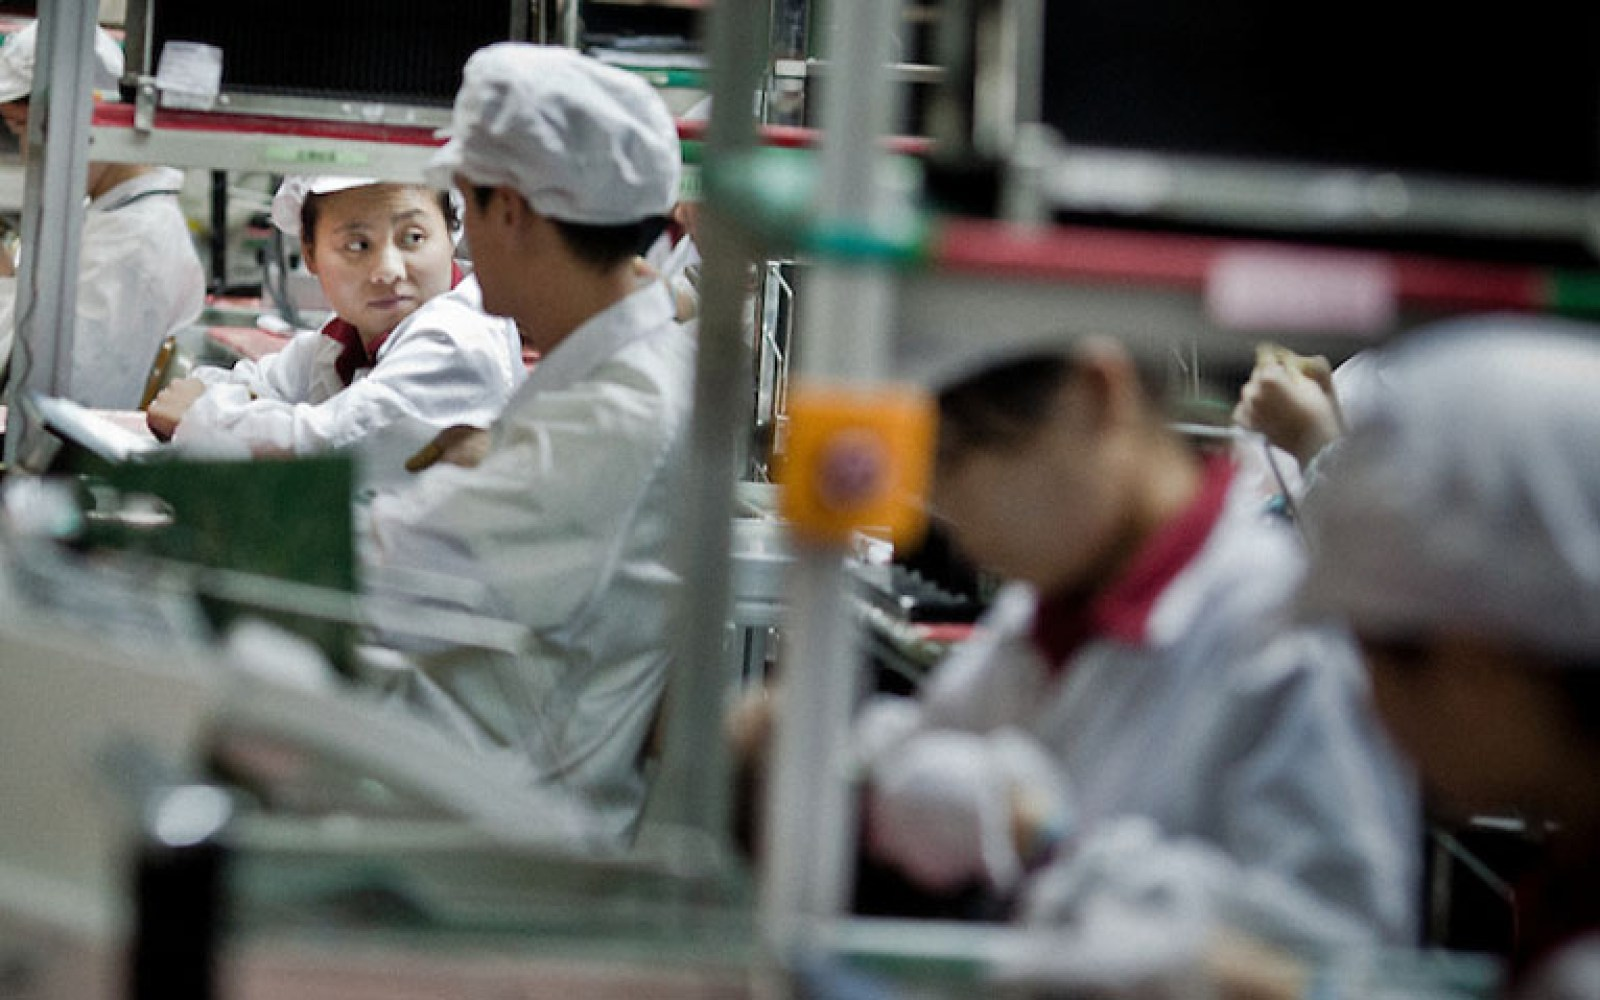 Foxconn prepares to replace workers with robots in iPhone 6 assembly process